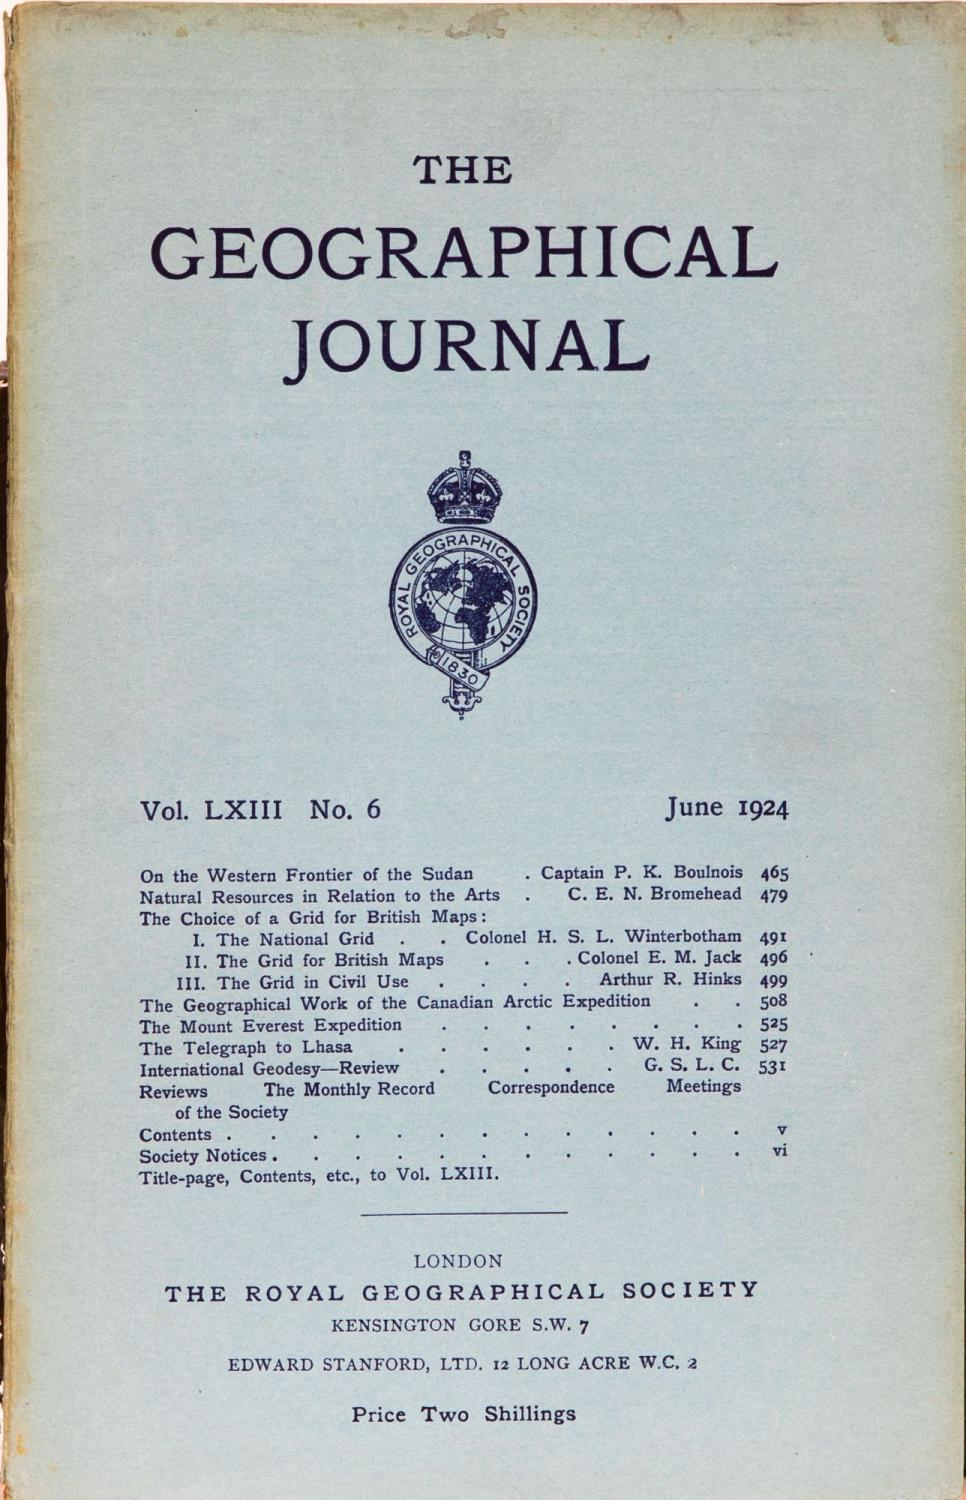 The Geographical Journal The Royal Geographical Society